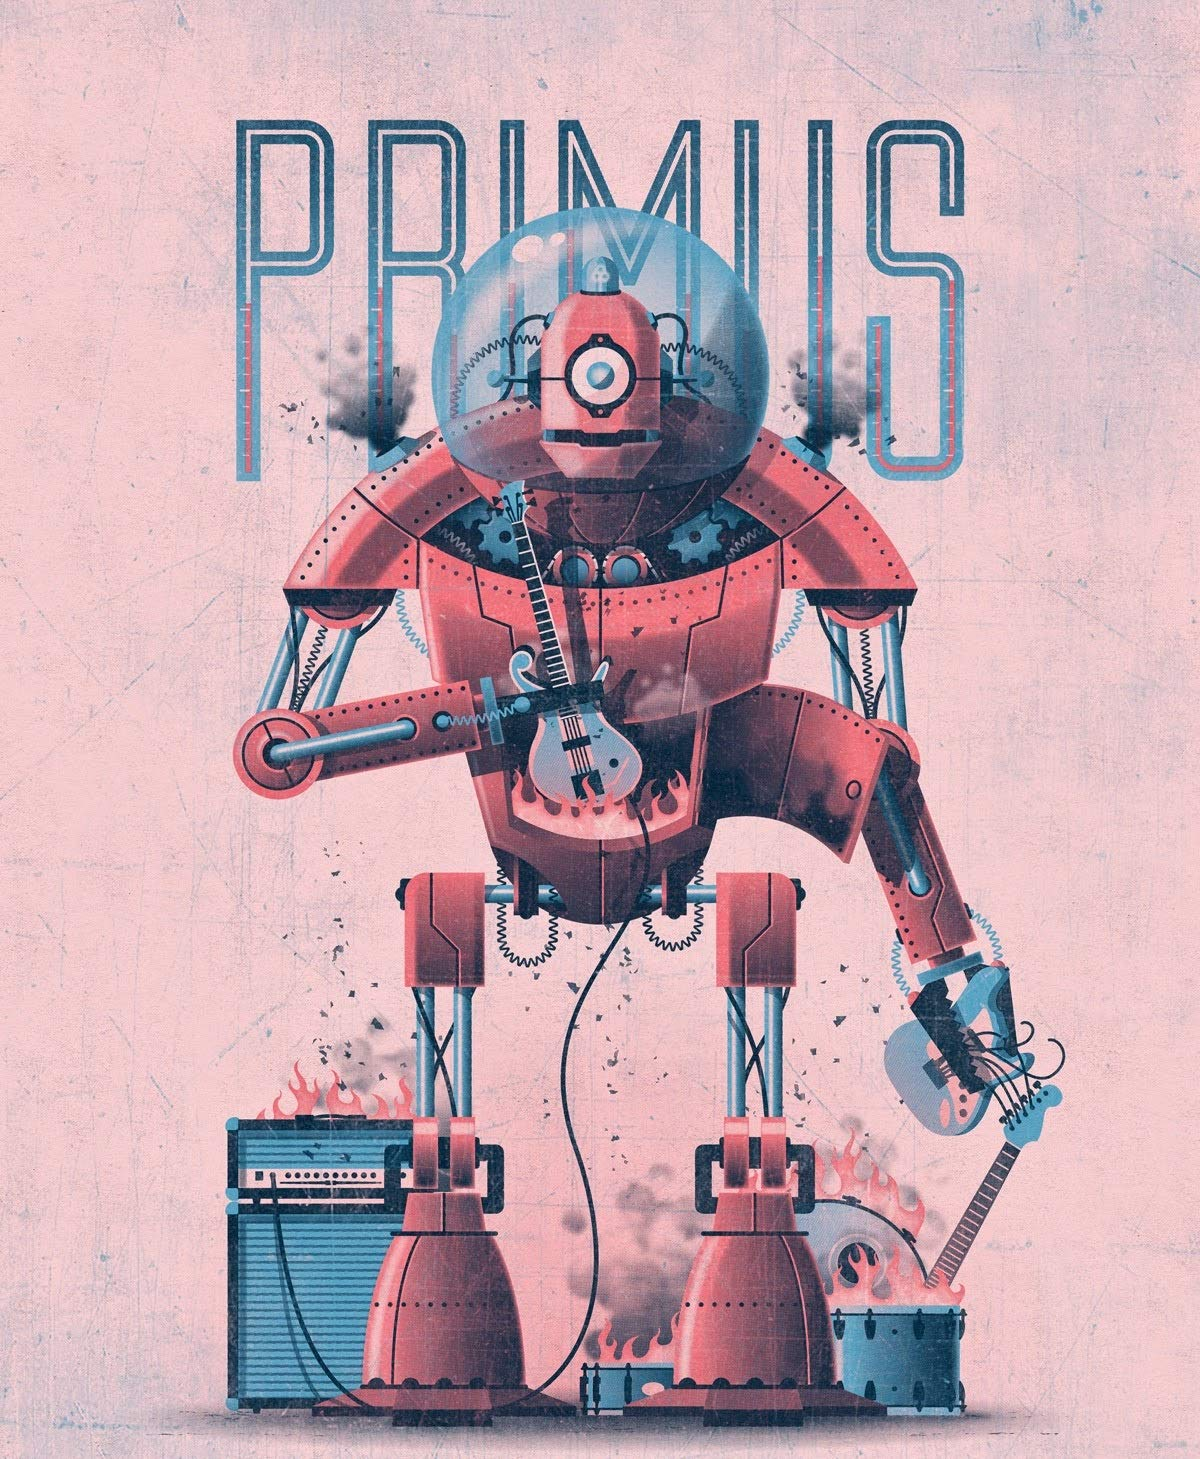 Game Room Poster Primus Poster Print Canvas Art Wall Art Primus Art Posters for Wall Original Art Poster Gift No Frame Poster Artwork